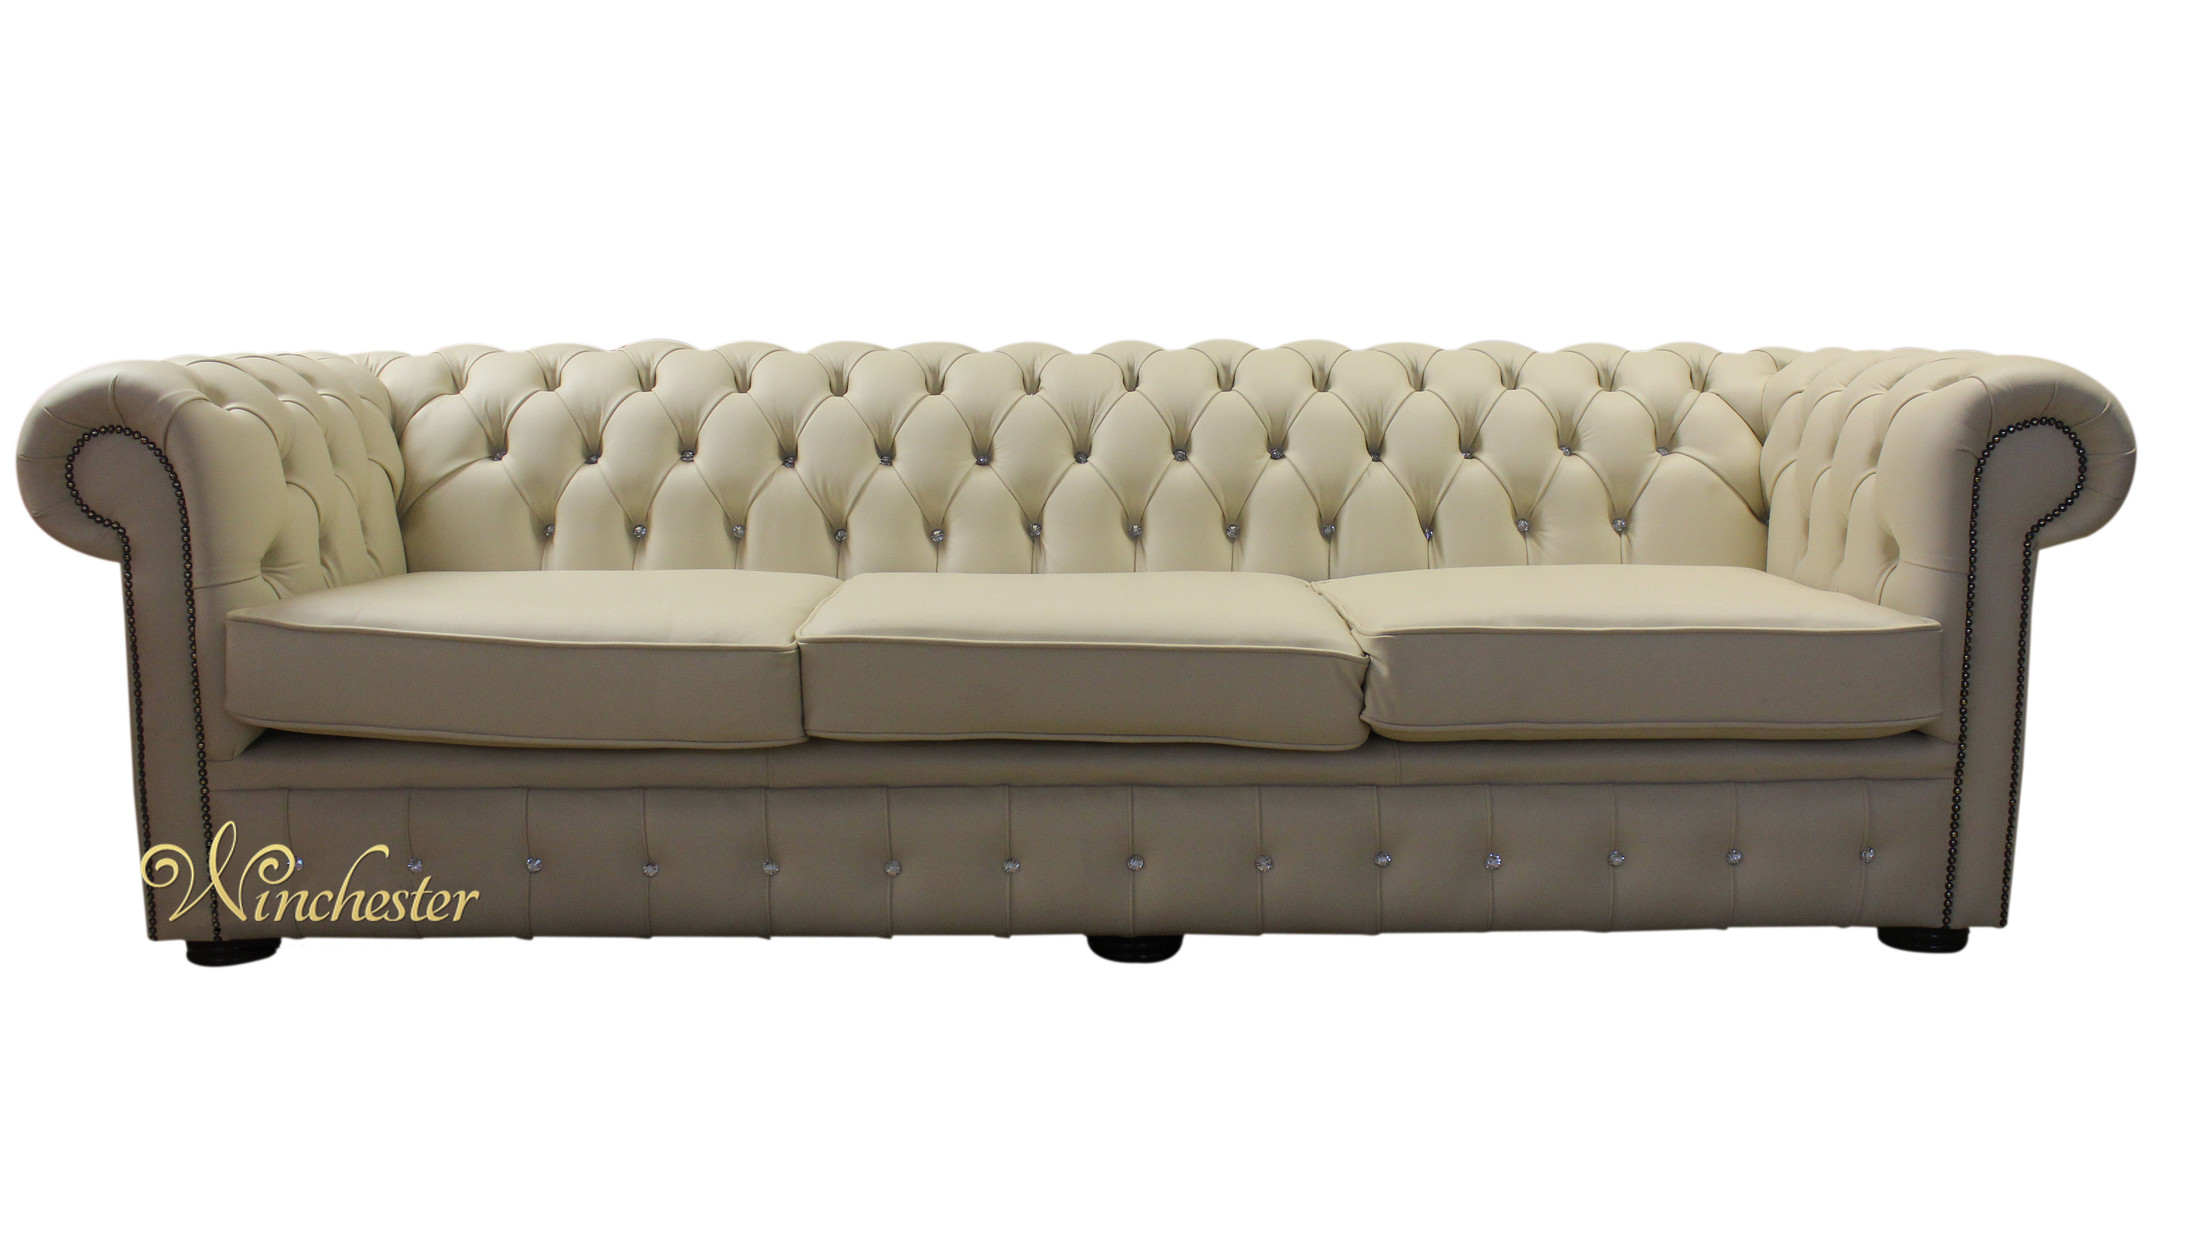 Chesterfield Swarovski 4 Seater Diamante Crystal Leather Sofa Wc